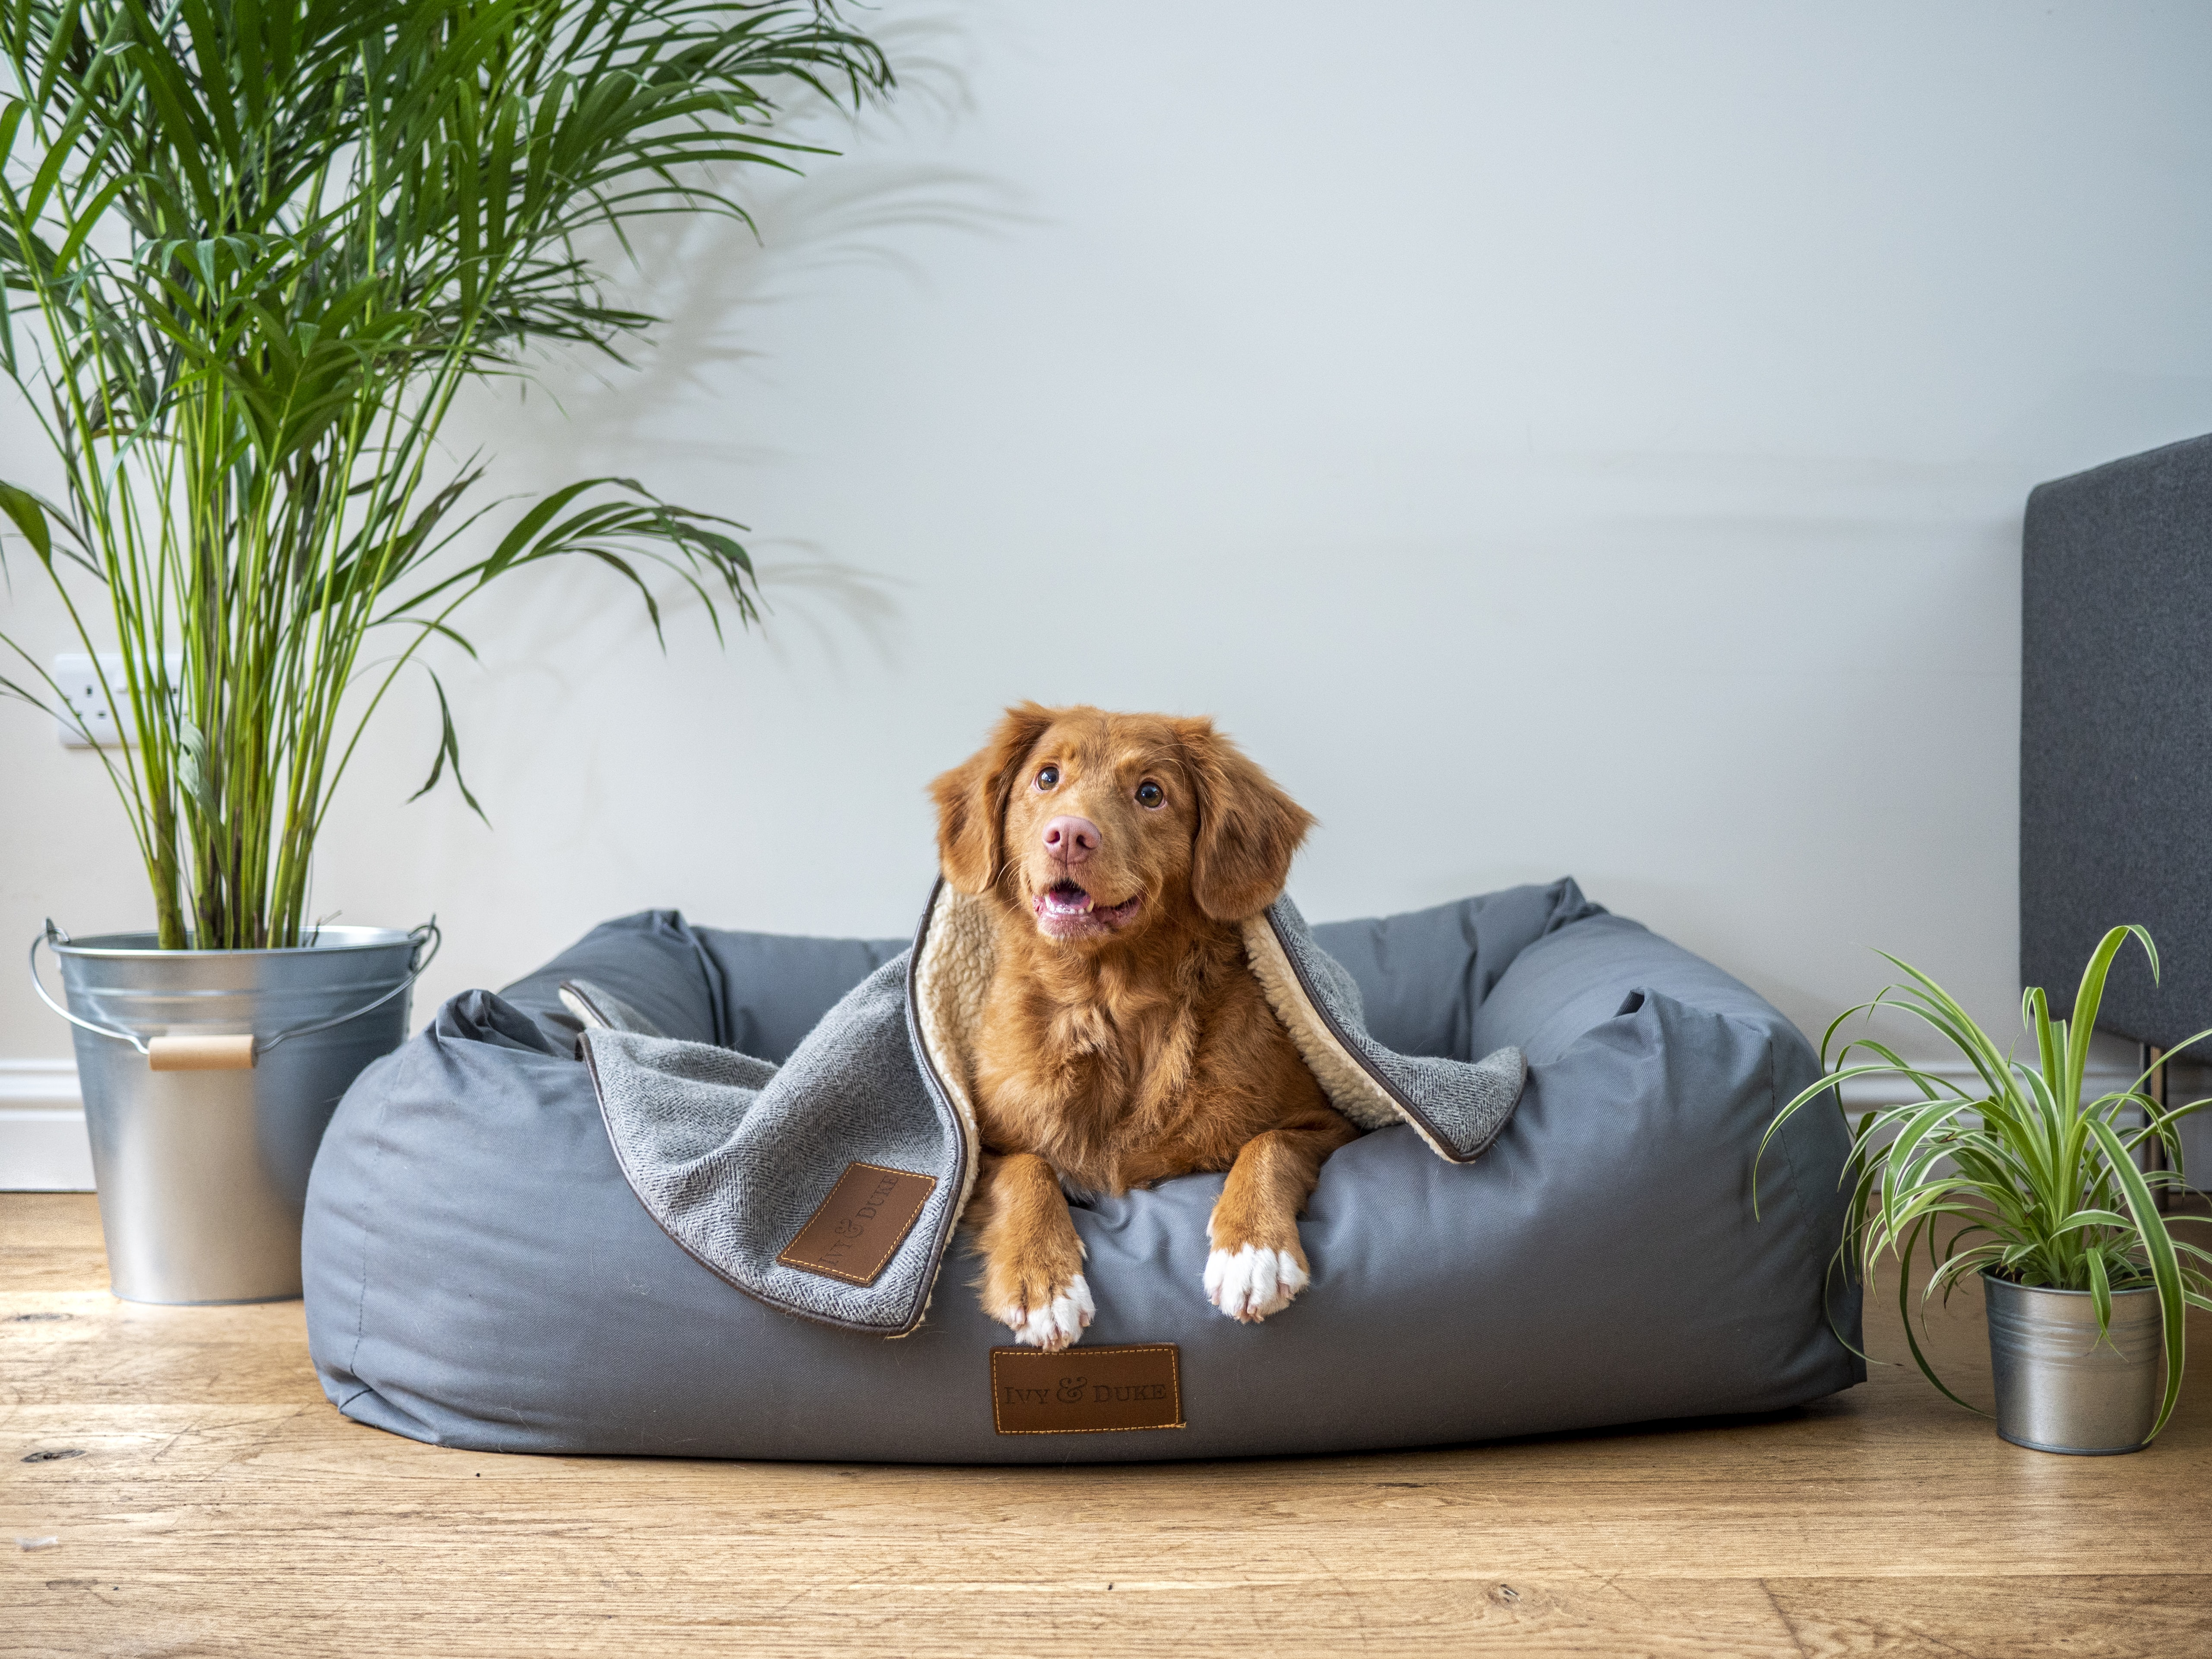 Learn How To Choose The Correct Equipment For Your Dog's Comfort